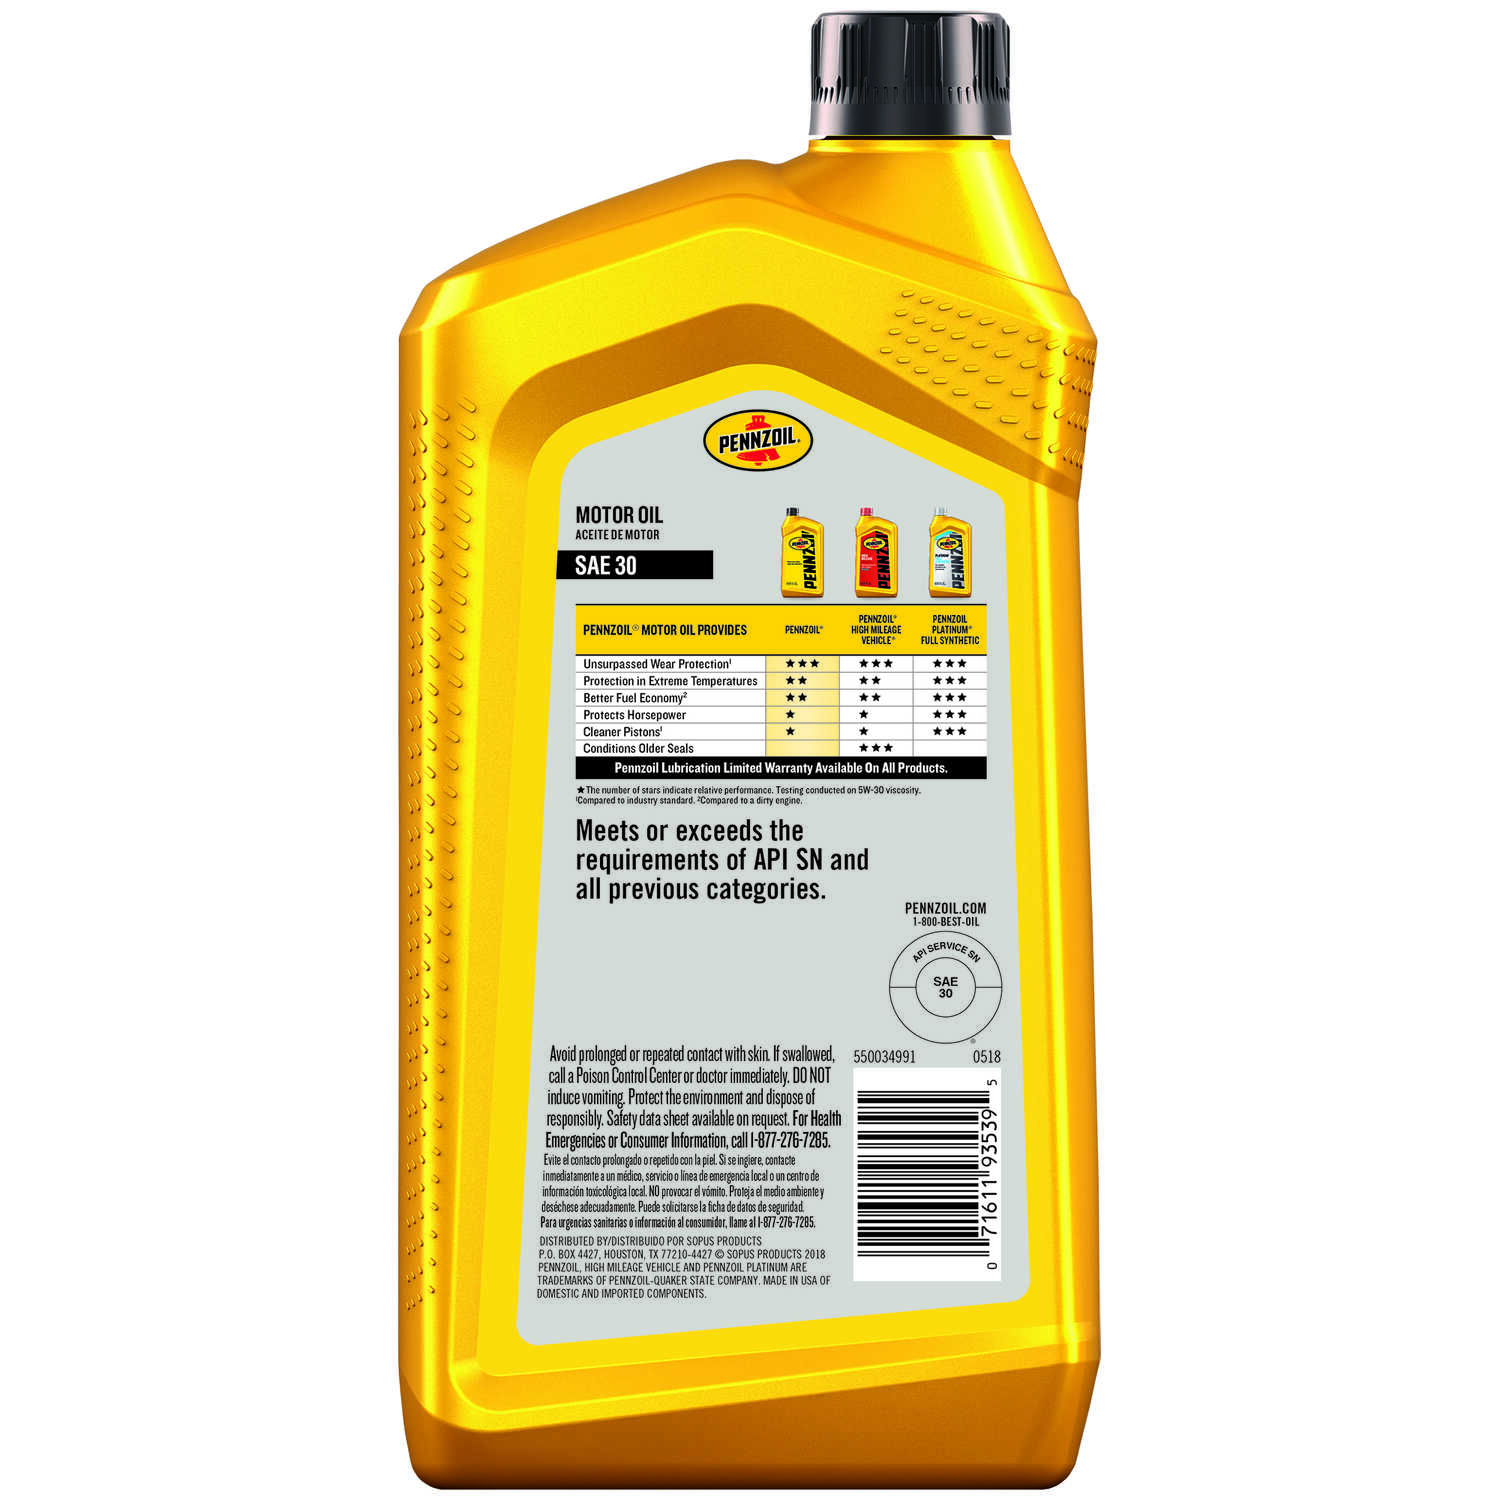 PENNZOIL  HD-30  4 Cycle Engine  Heavy Duty  Motor Oil  1 qt.